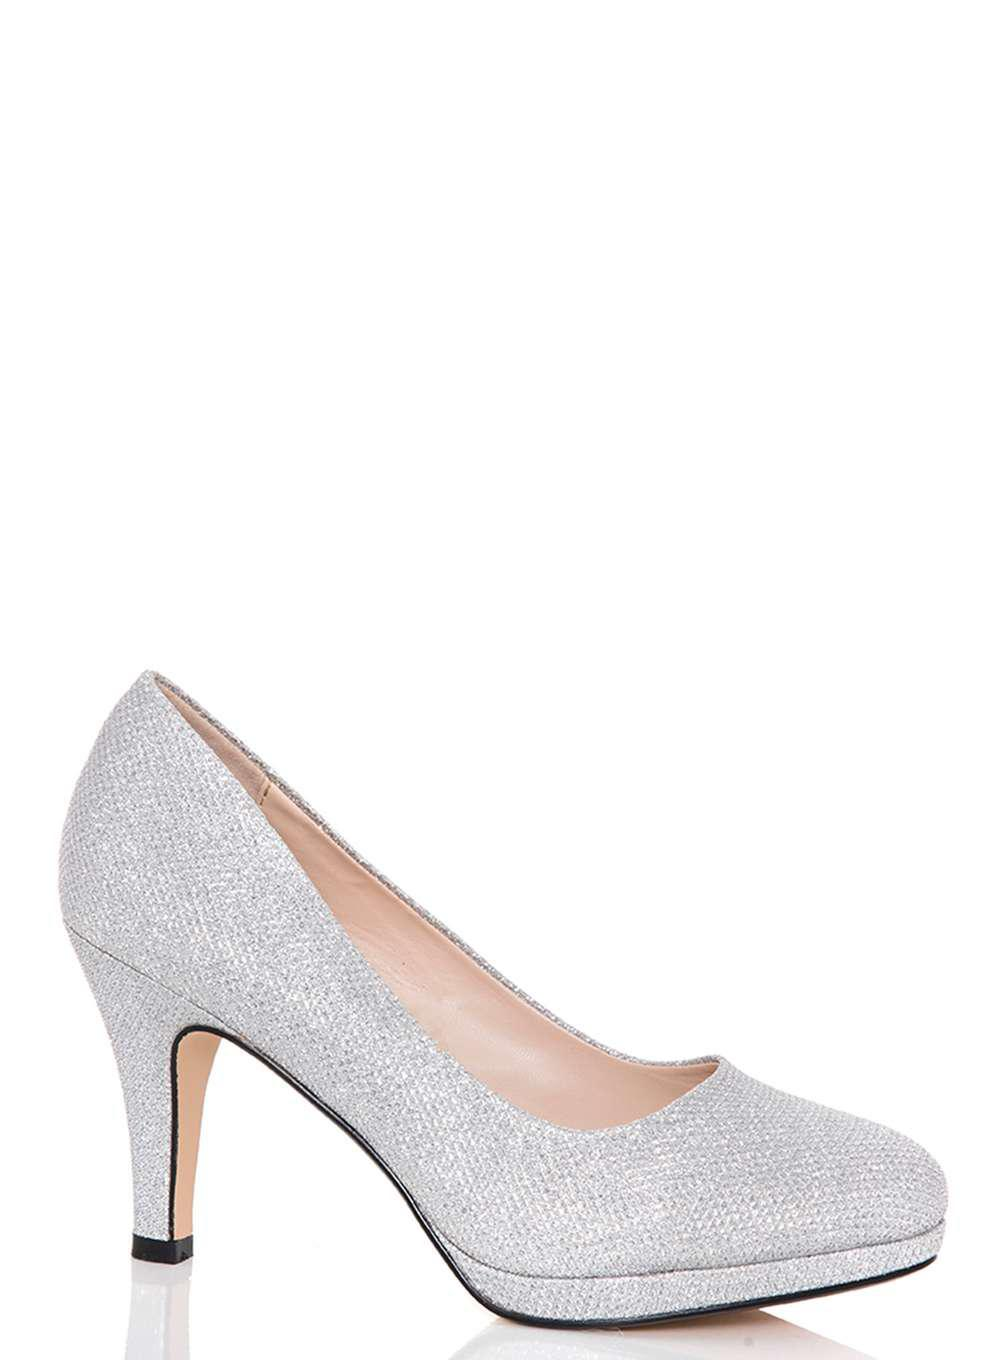 c7811cd49c0 Lyst - Dorothy Perkins Quiz Silver Glitter Mid Heel Court Shoes in ...